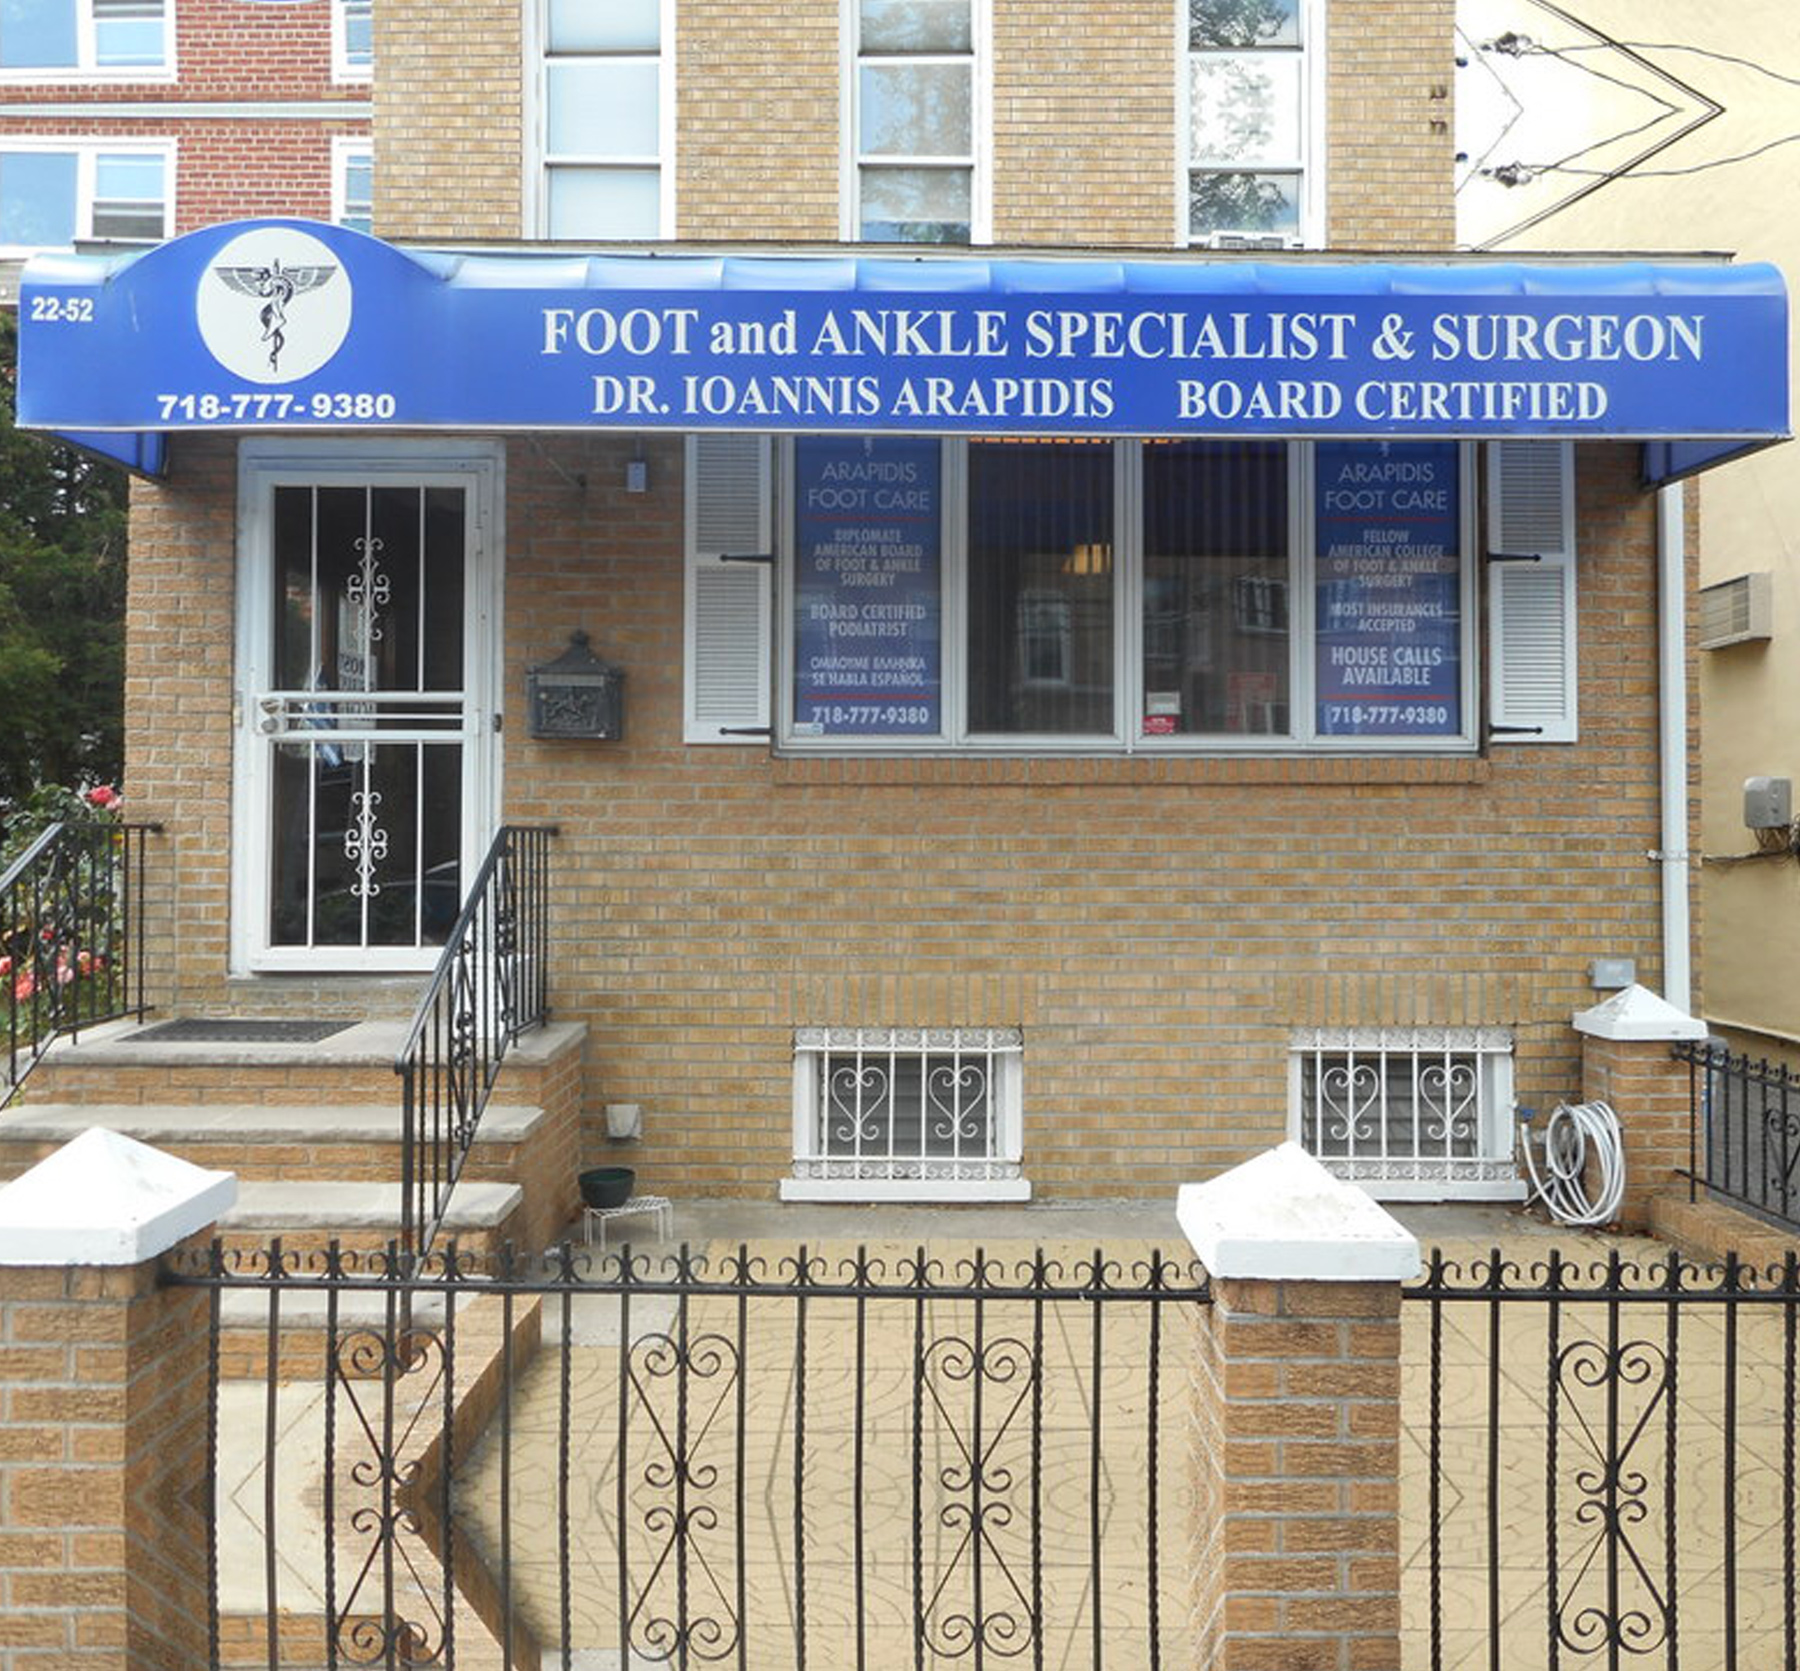 Arapidis Foot Care